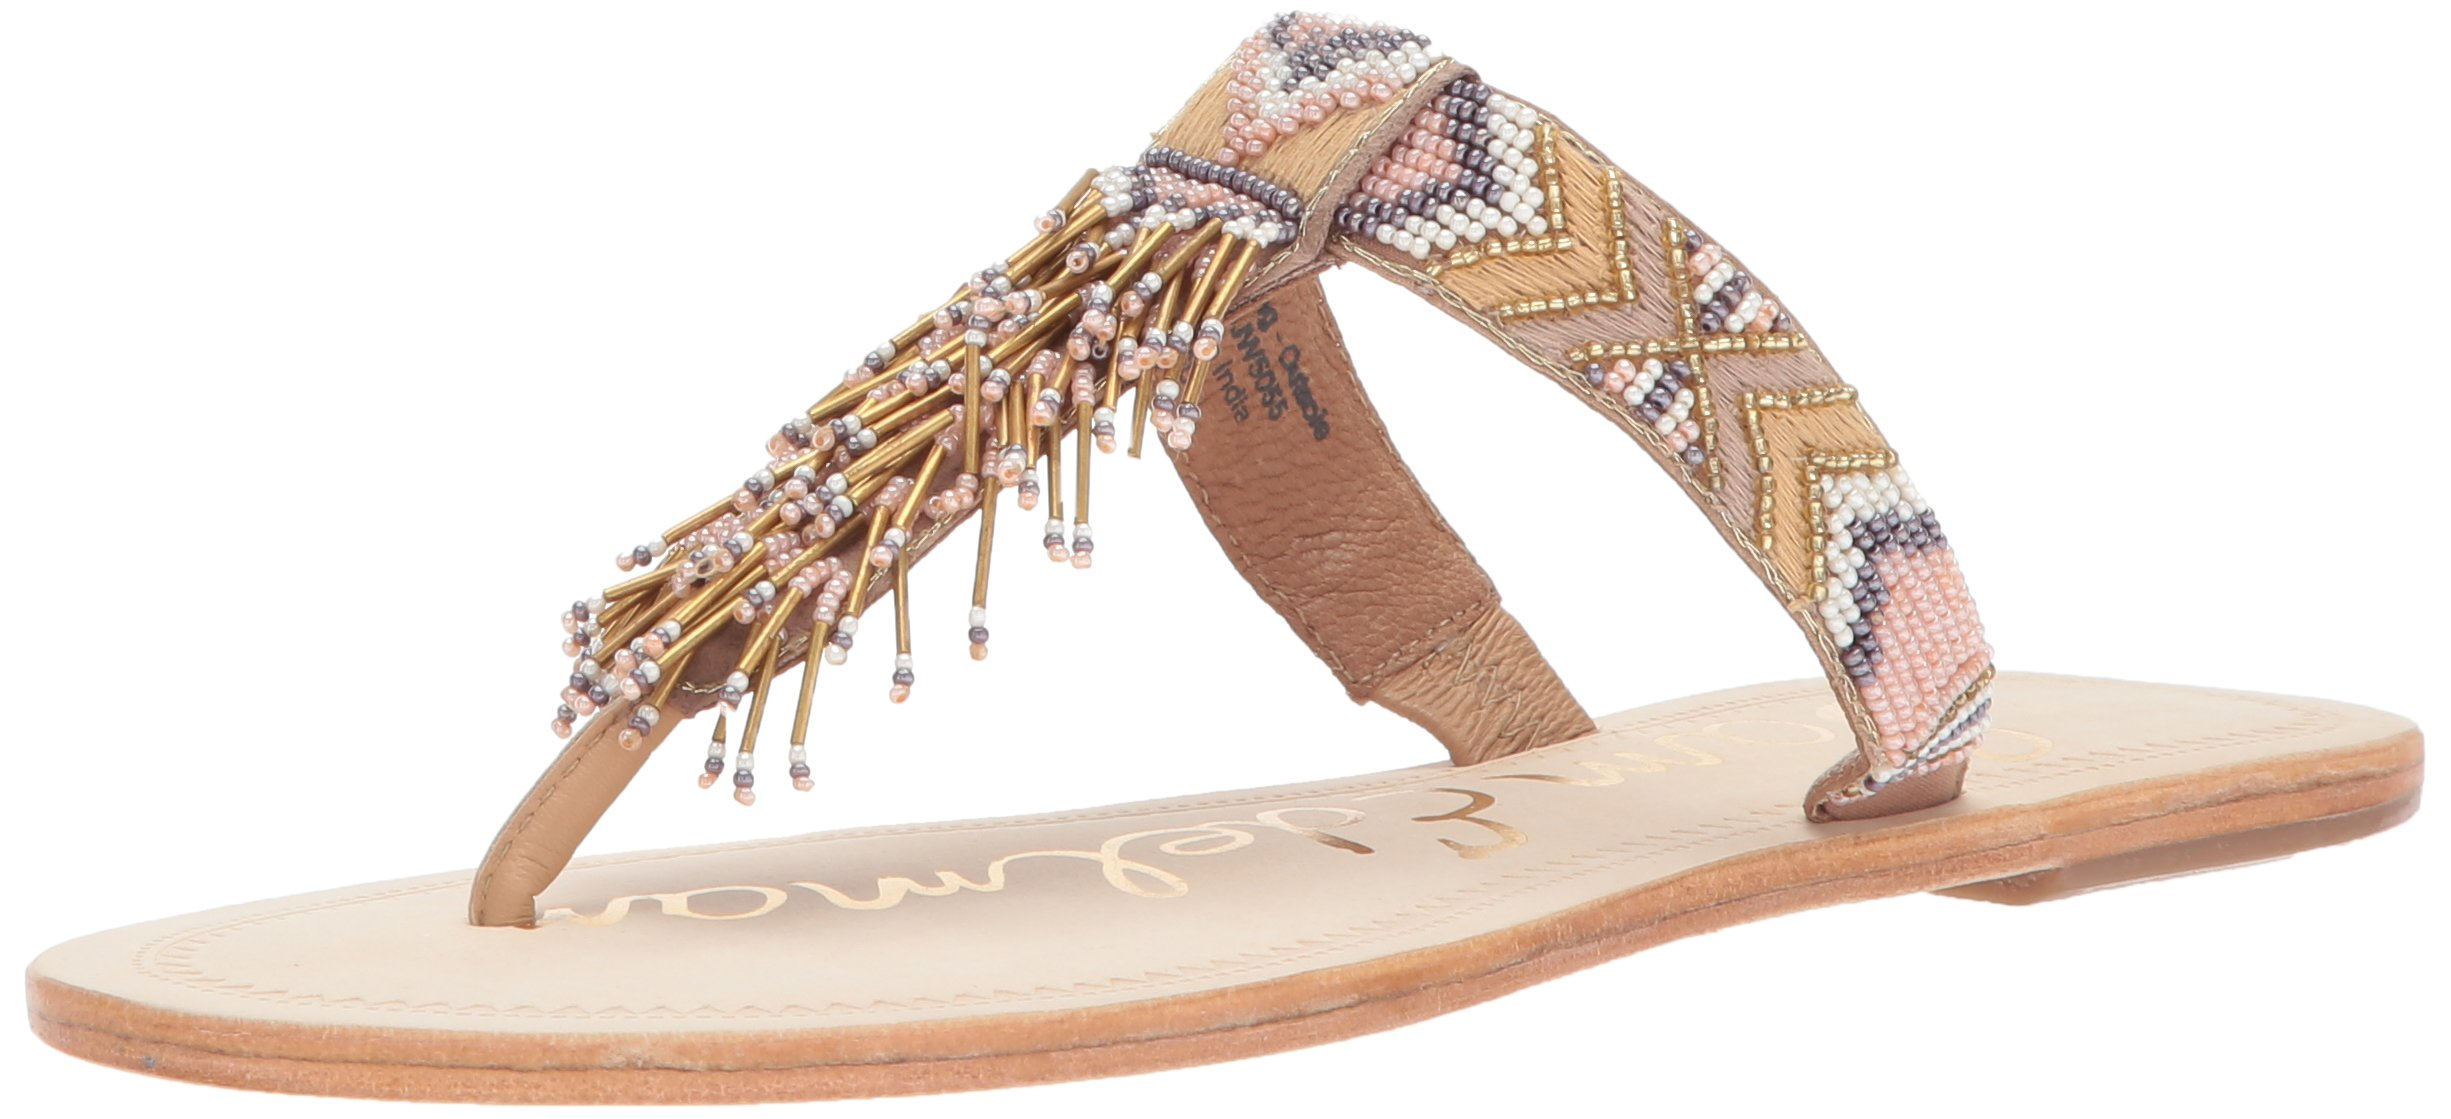 Sam Edelman Women's Anella-1, Natural Multi, 5.5 M US by Sam Edelman